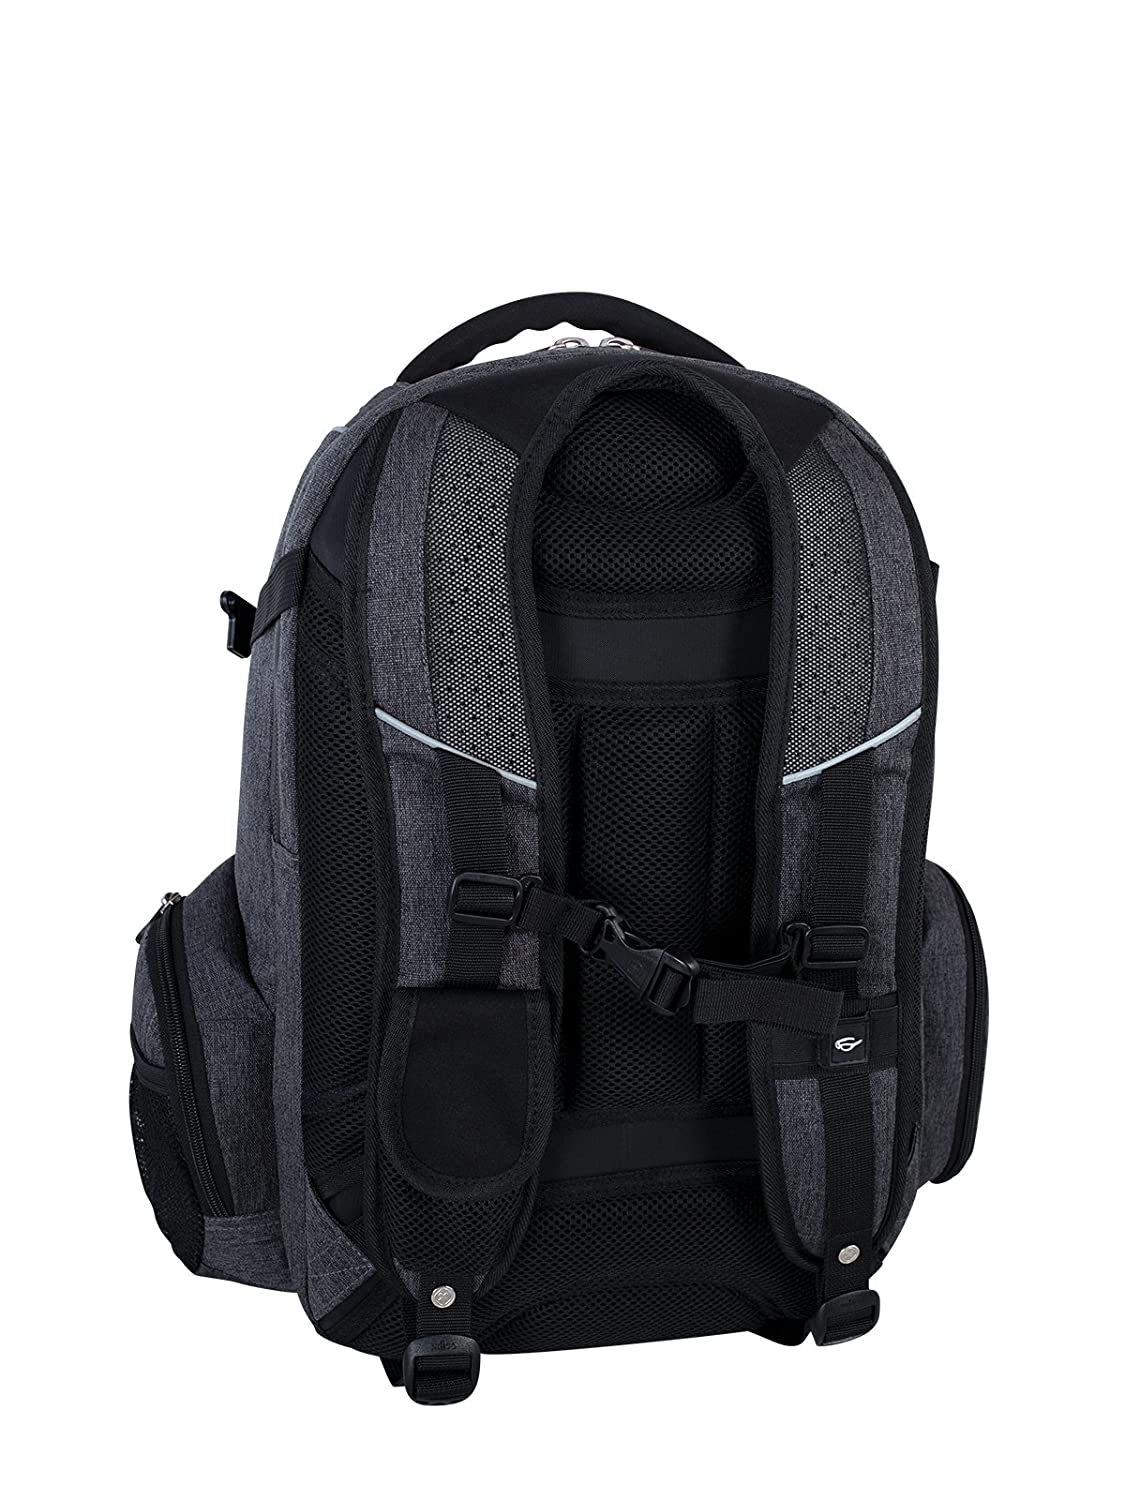 Black Fits 15.6-Inch to 17.3-Inch Laptop Swiss Gear International Carry-On Size Rainproof Backpack for Laptop